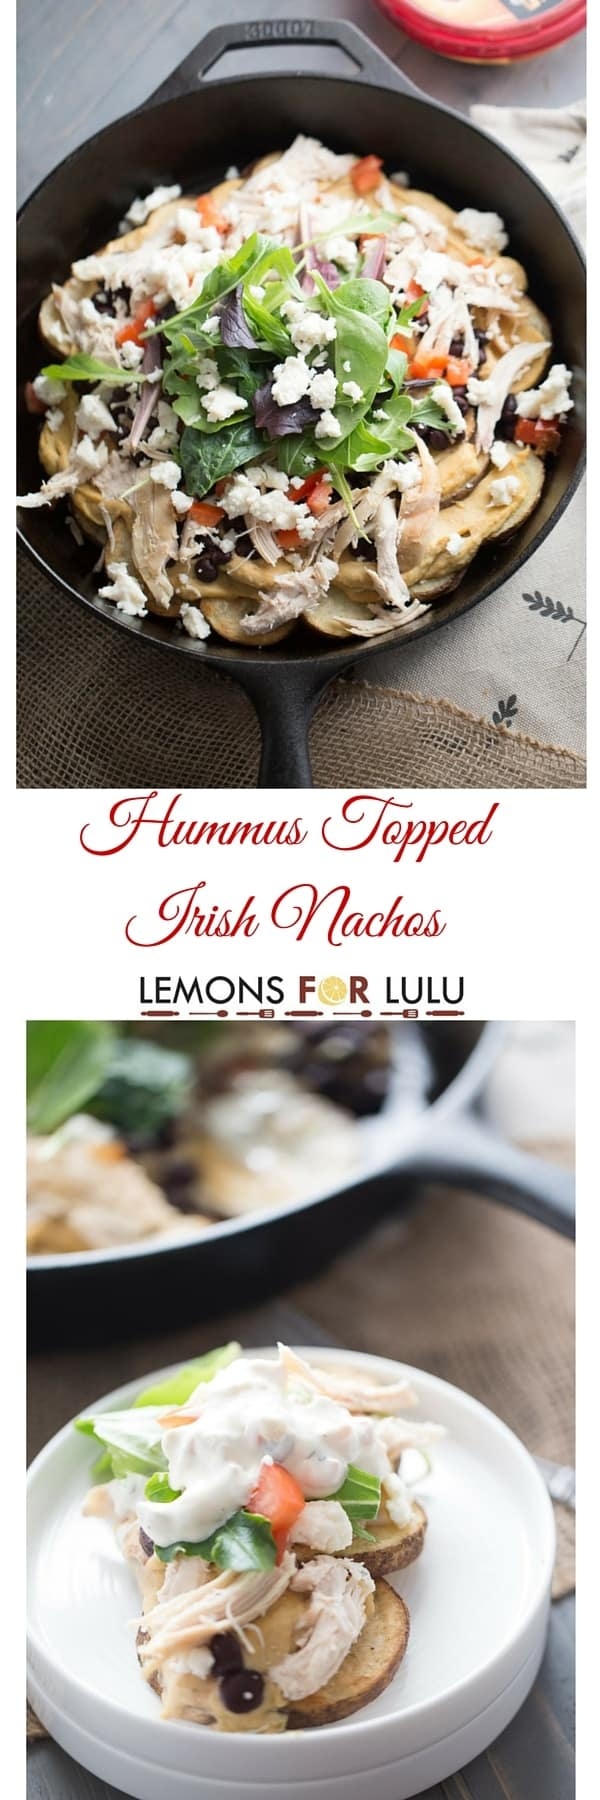 Crispy baked potatoes give this game day snack and Irish twist, but the hummus, chicken and veggies turns this easy snack into something extraordinary! lemonsforlulu.com